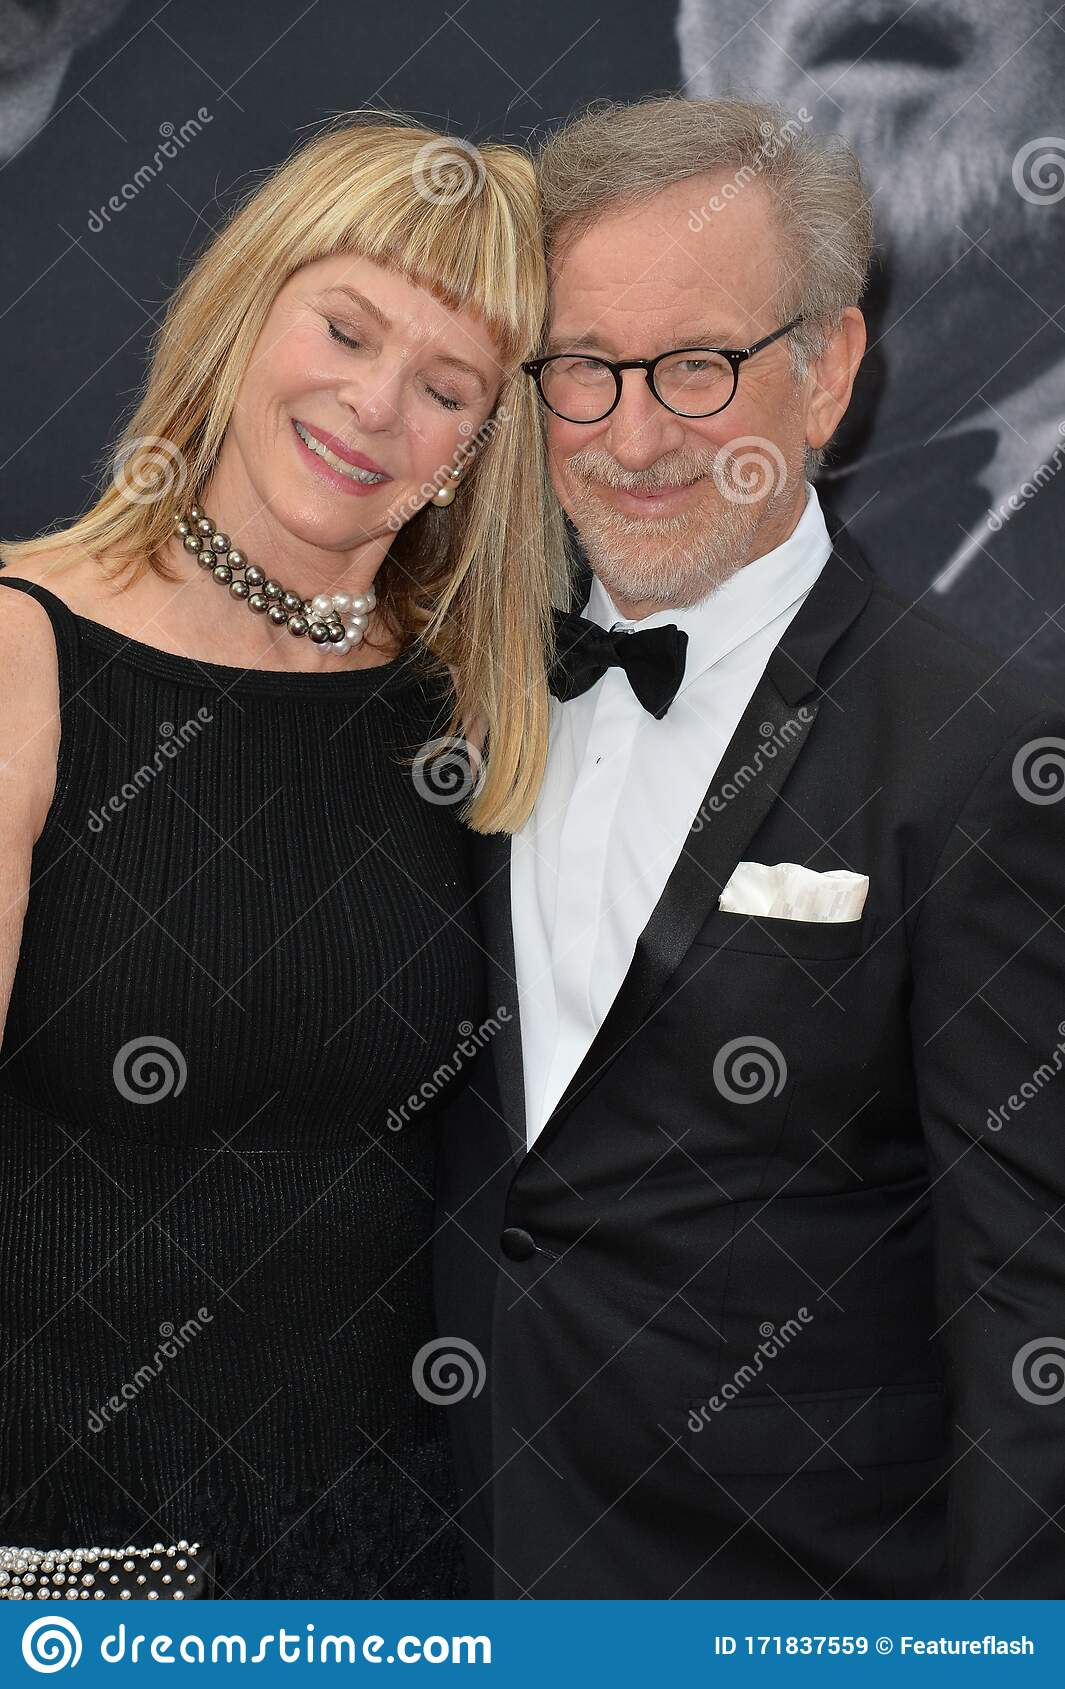 Steven Spielberg Kate Capshaw Editorial Stock Image Image Of Length Black 171837559